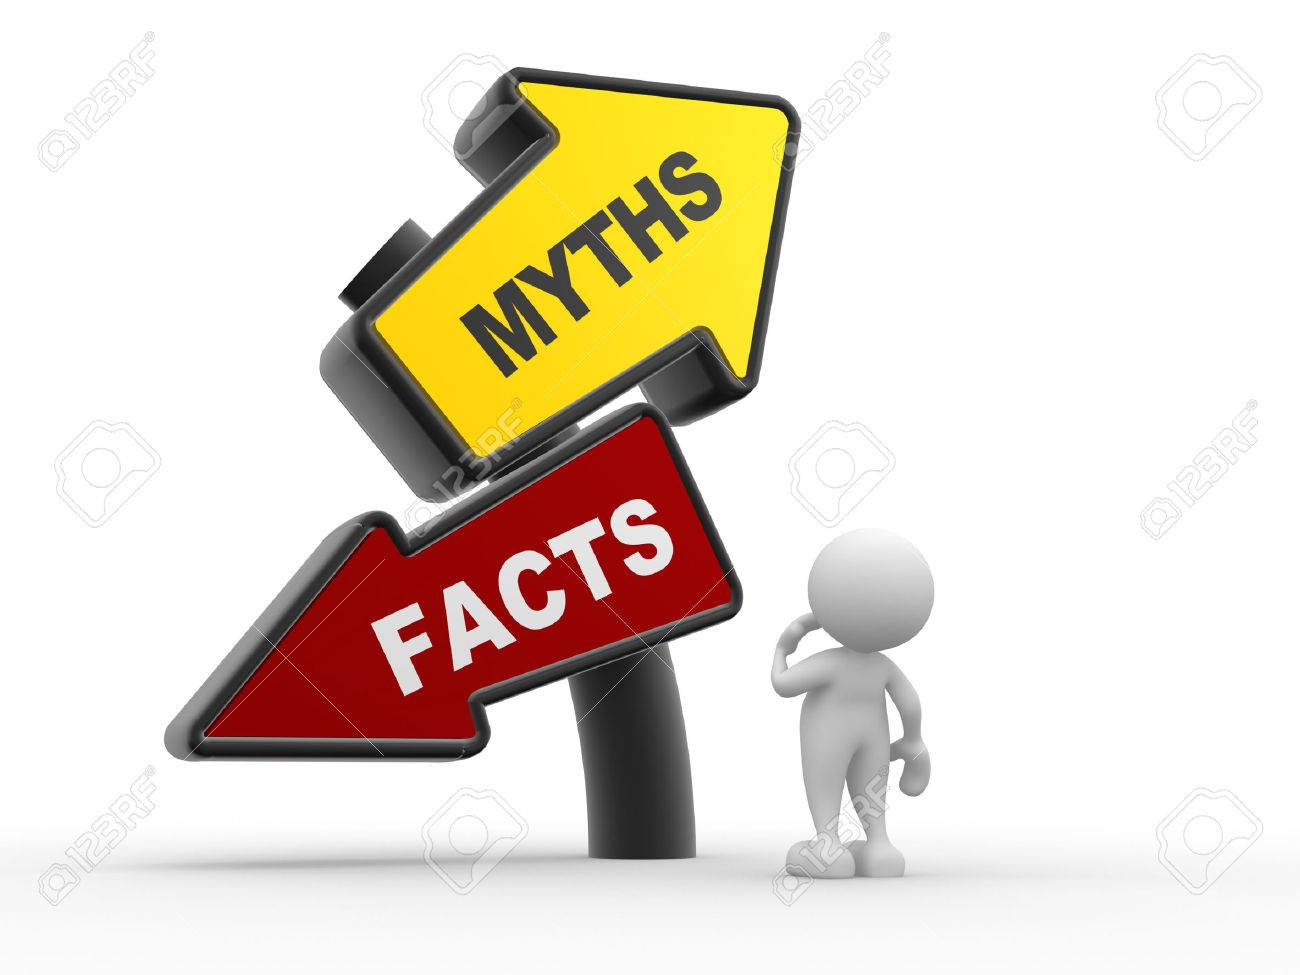 3d people - man, person and directional sign of facts versus myths Standard-Bild - 24896736